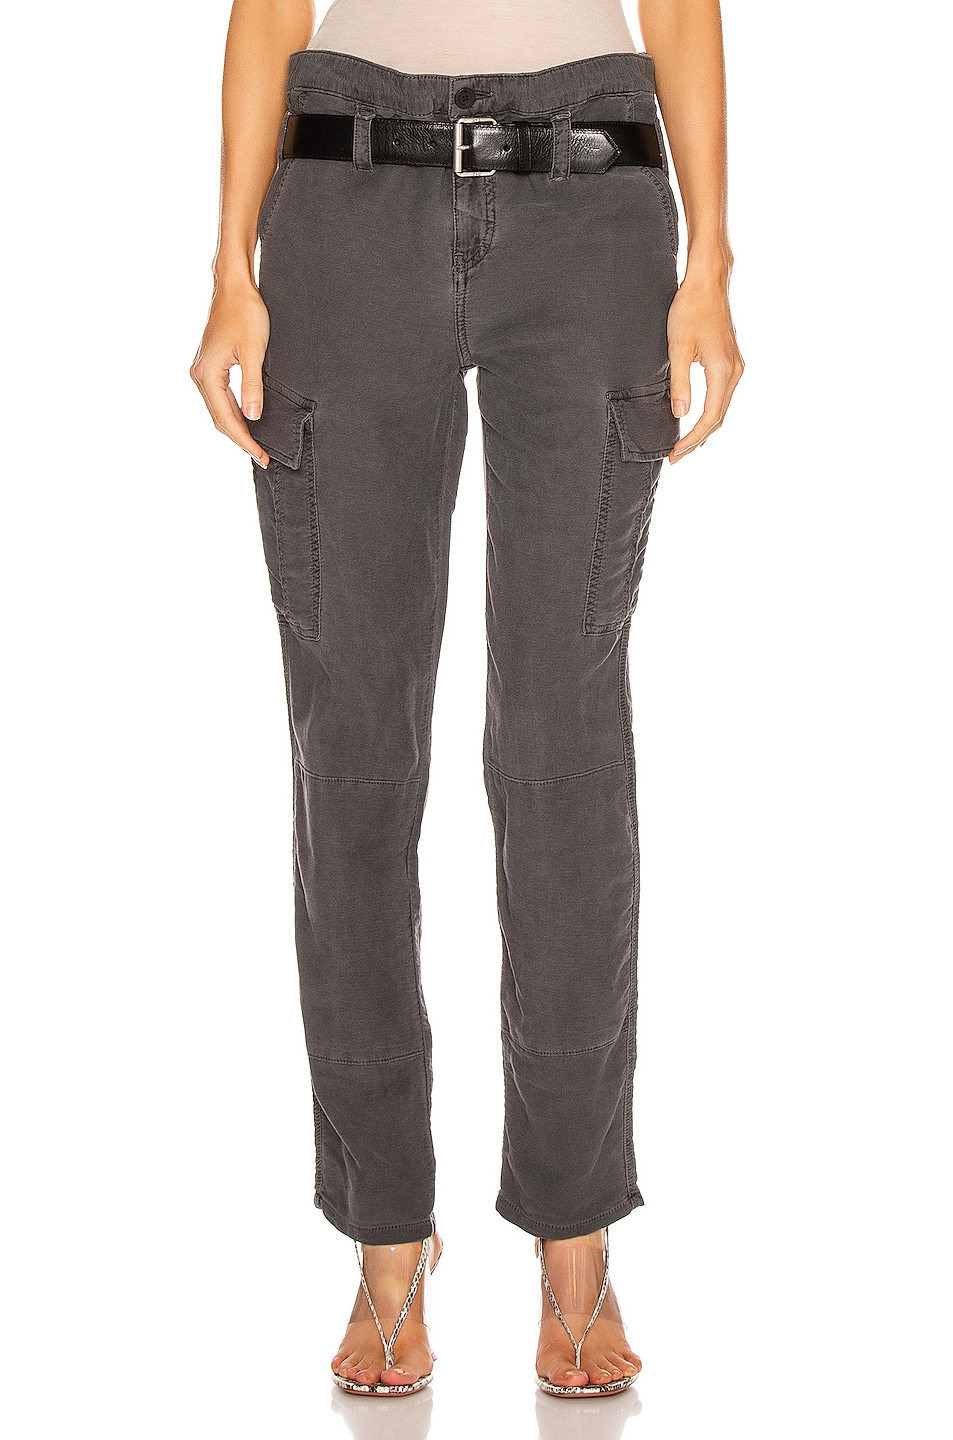 Image 1 of RtA Sallinger Pant in Faded Grey